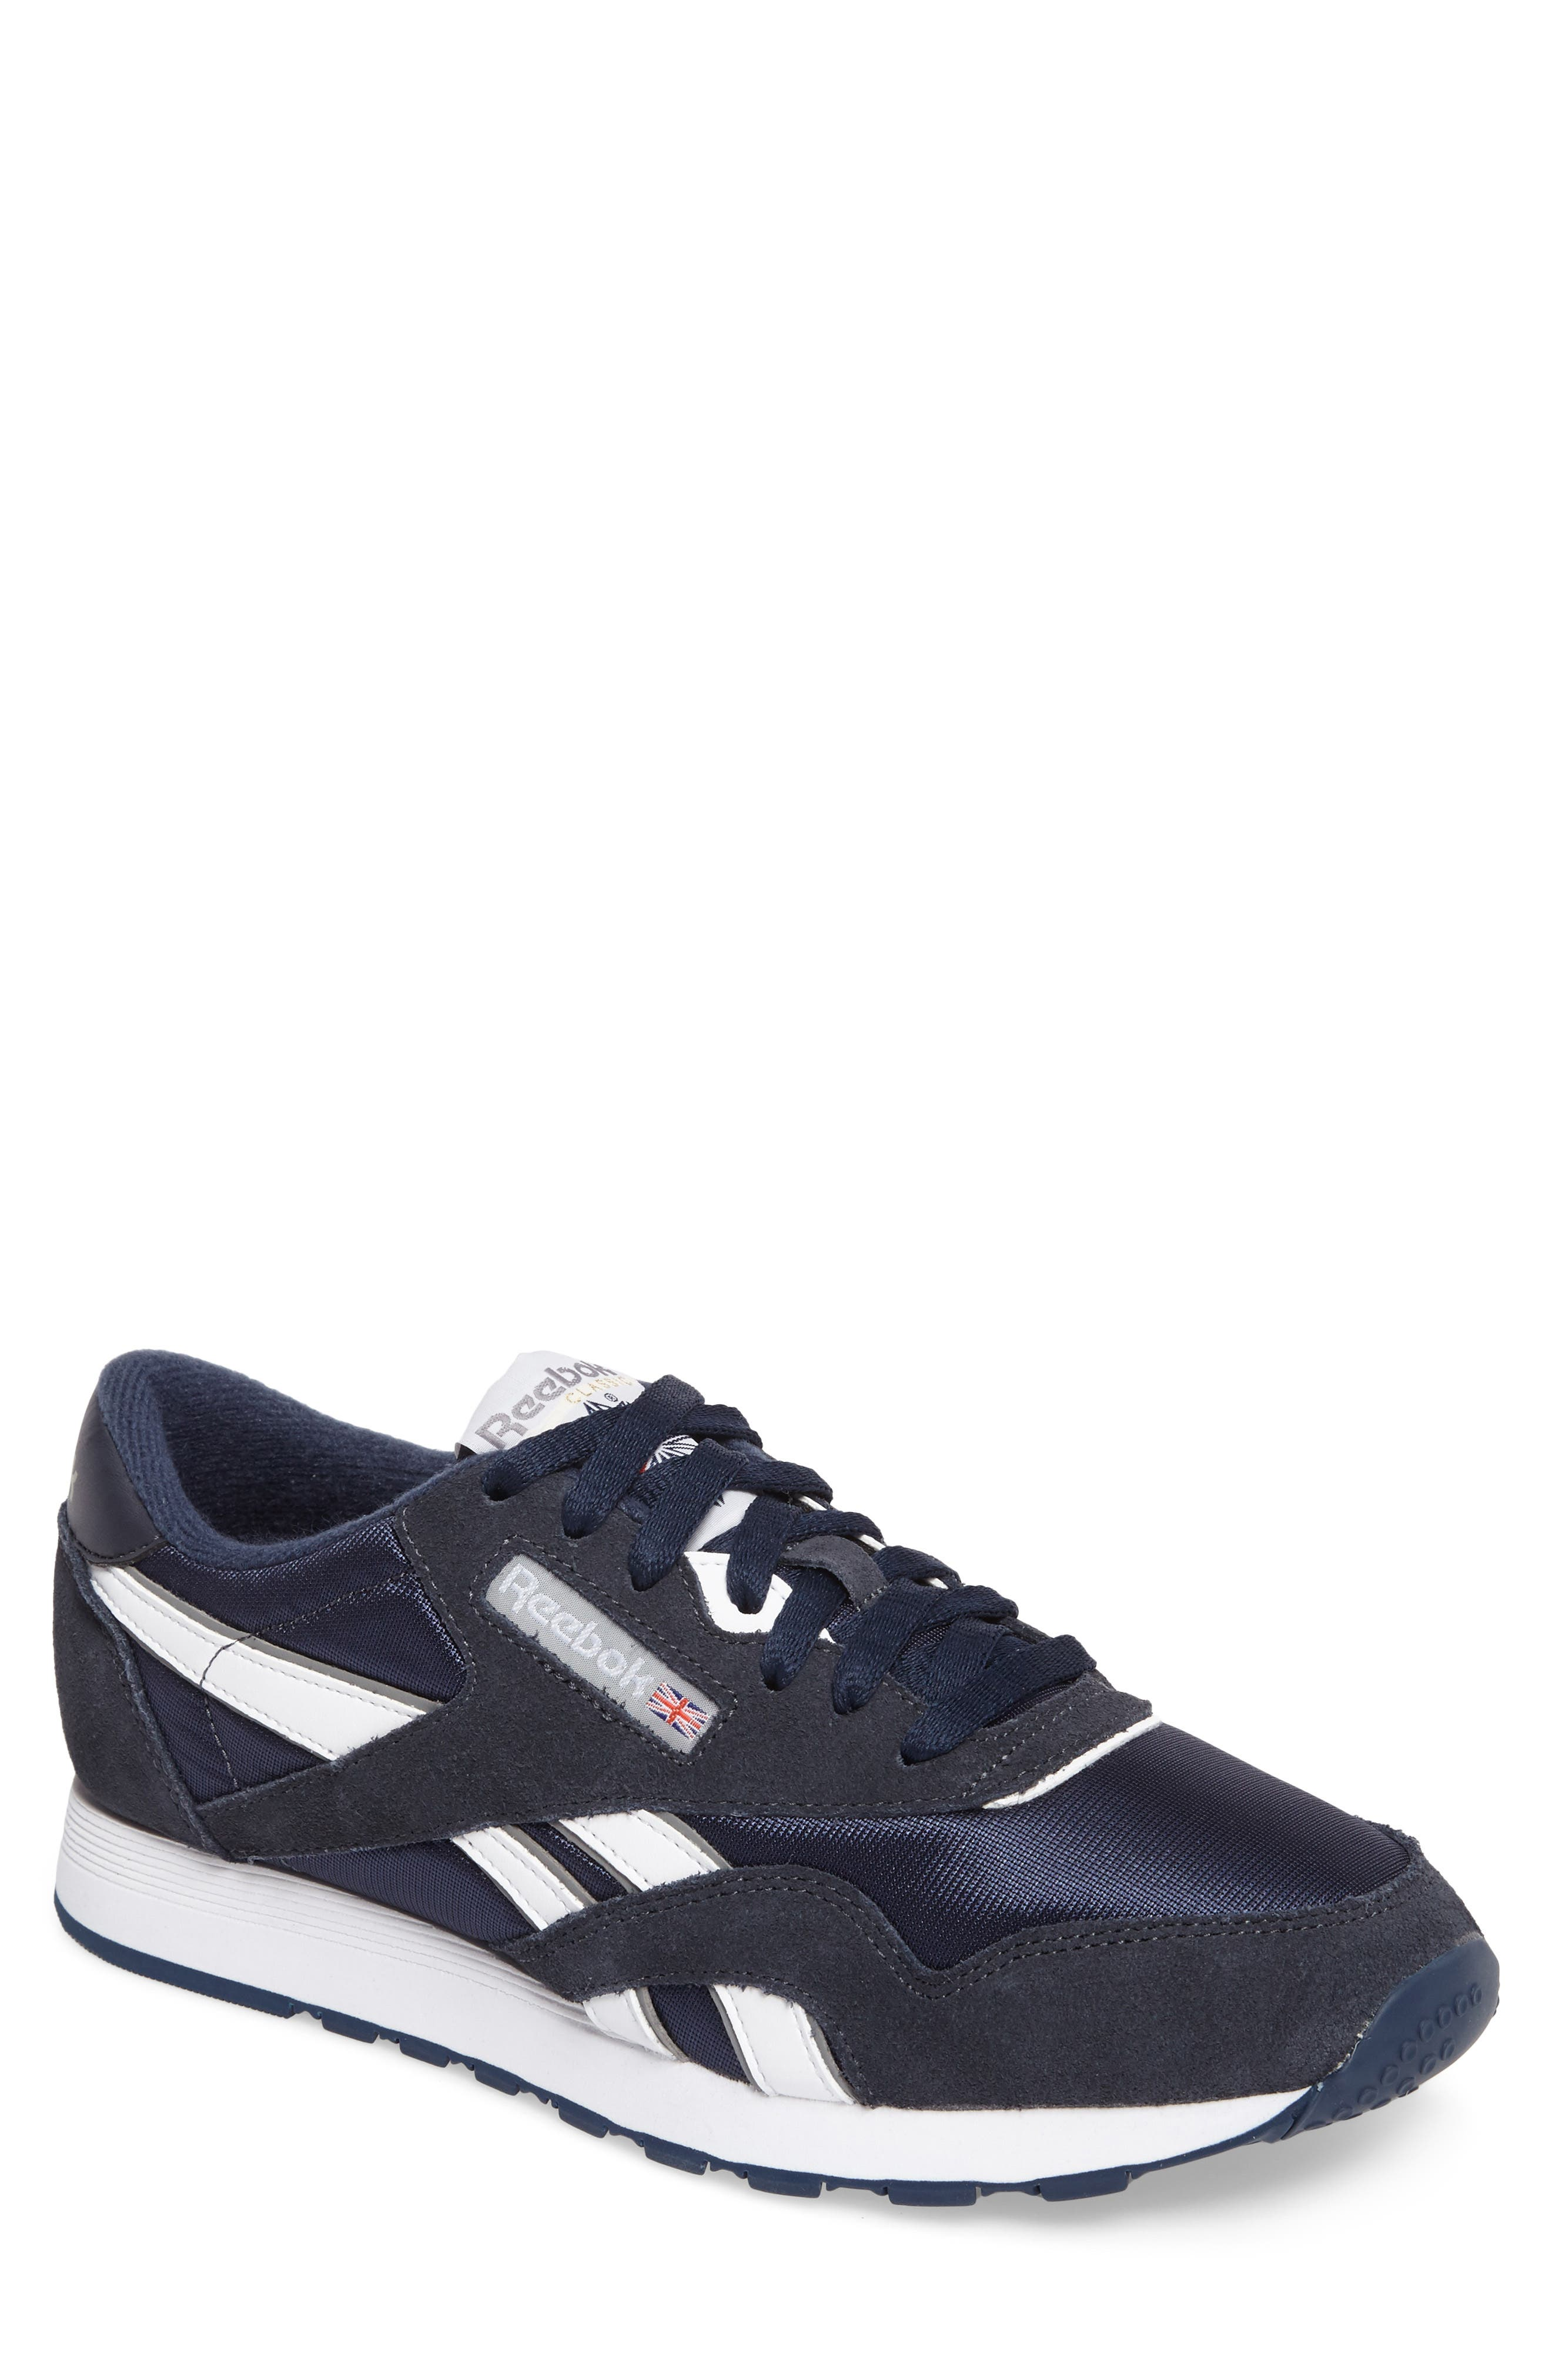 Classic Nylon Sneaker,                         Main,                         color, TEAM NAVY/ PLATINUM